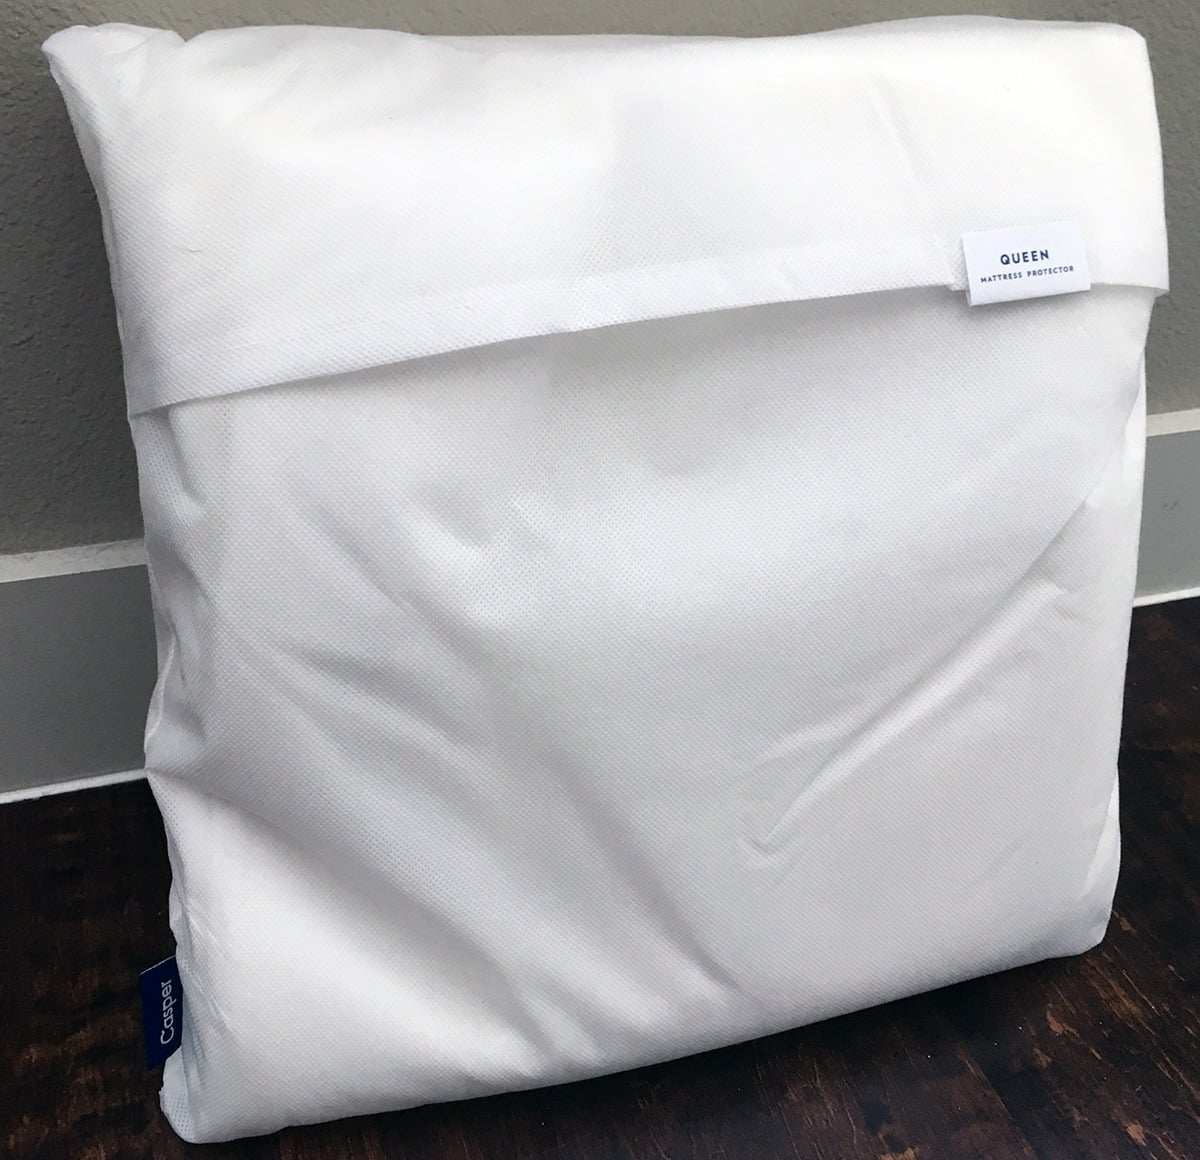 Casper Mattress Protector Review